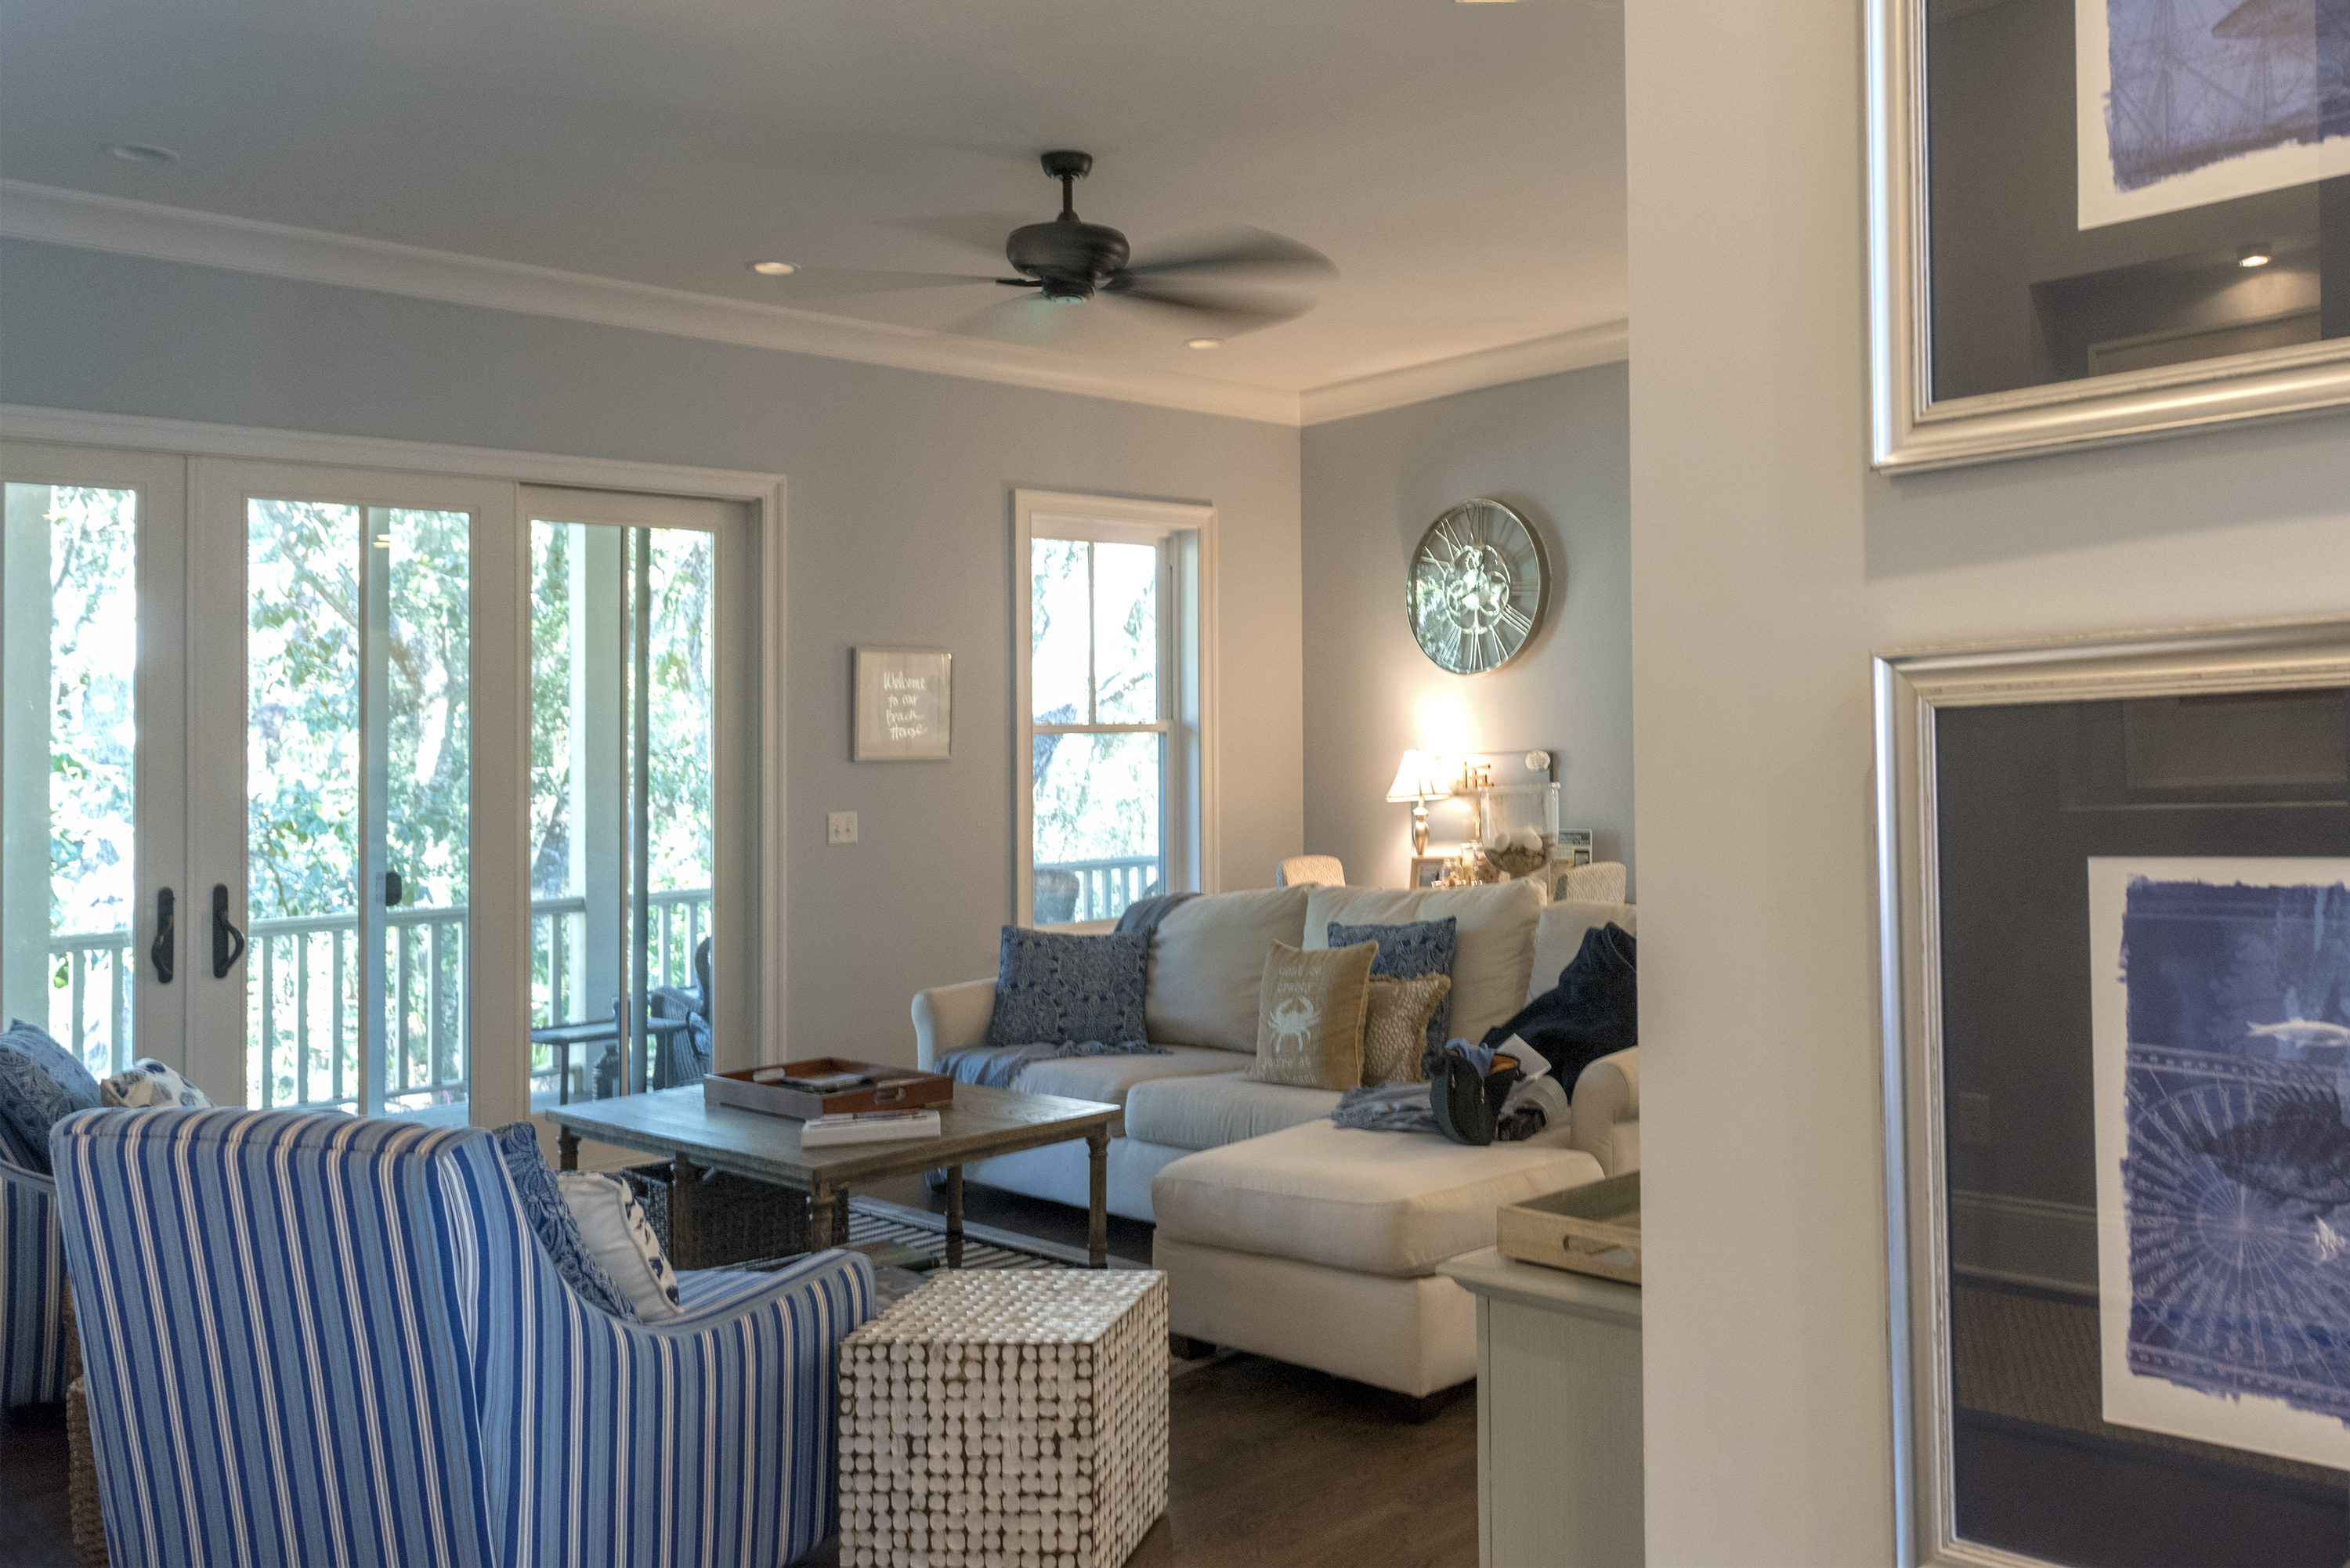 Sliding doors lead to a covered porch.